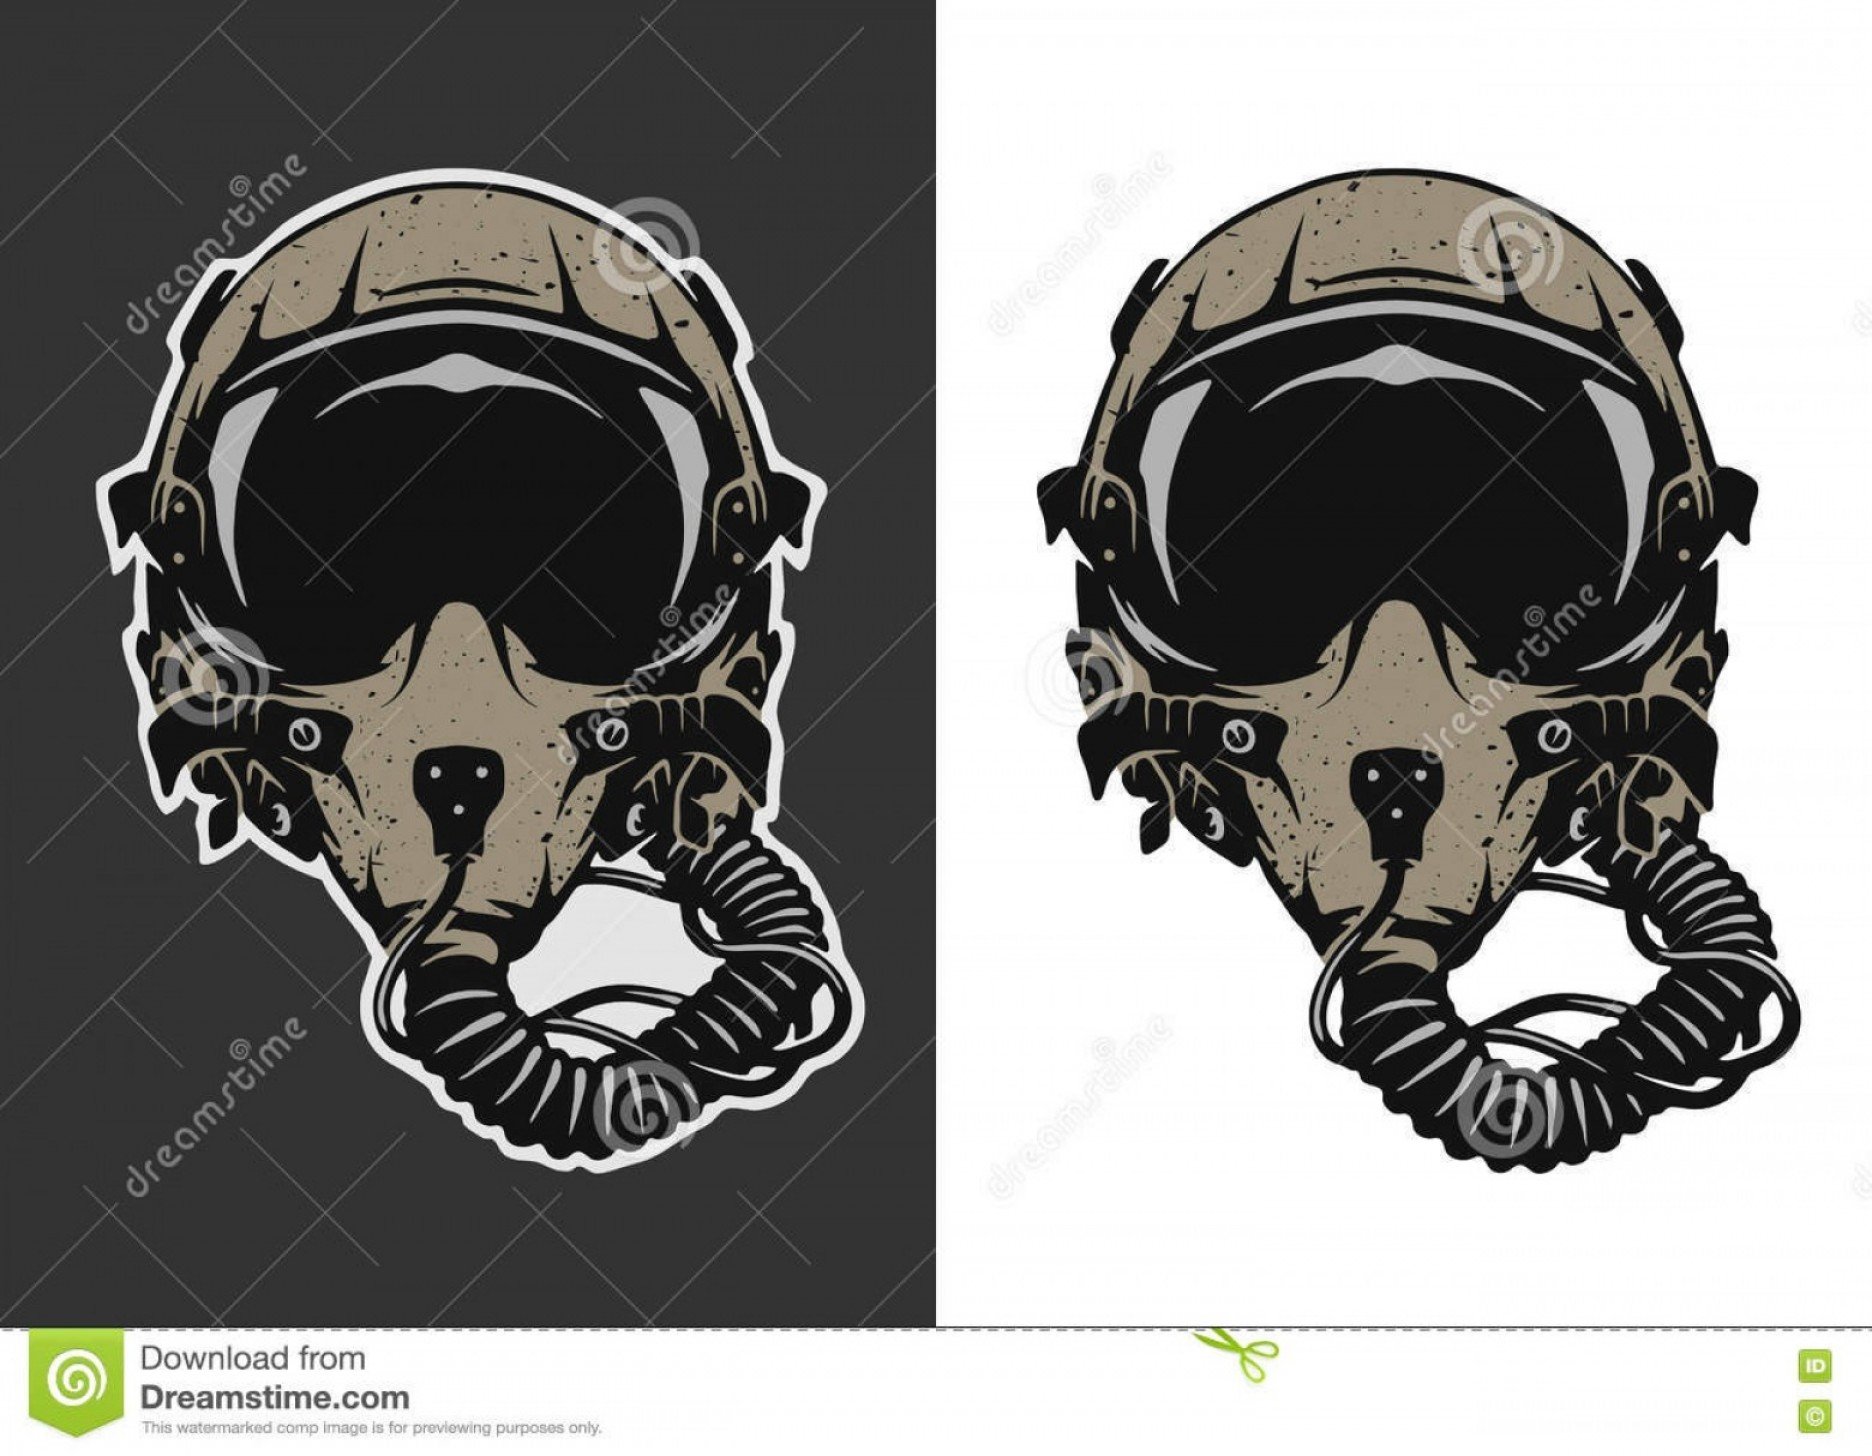 Fighter Helmet Vectors: Stock Illustration Fighter Pilot Helmet Dark White Background Vector Illustration Image